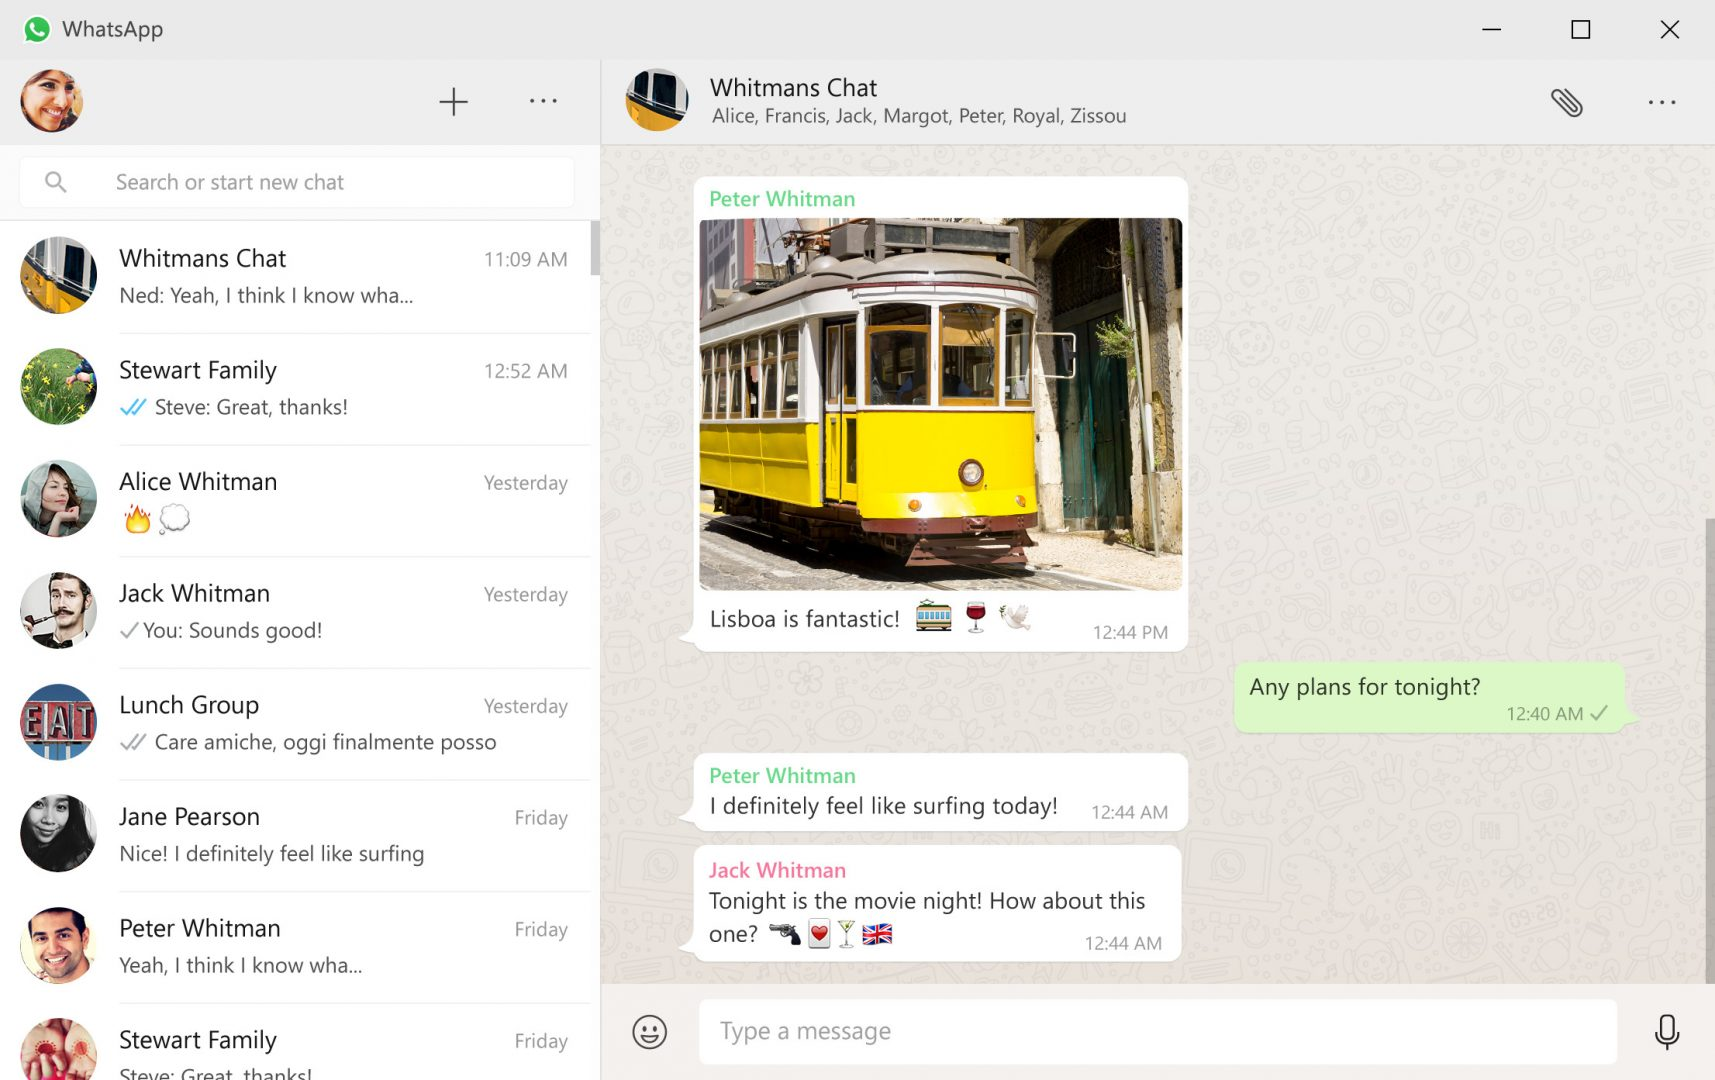 WhatsApp Windows 10 app